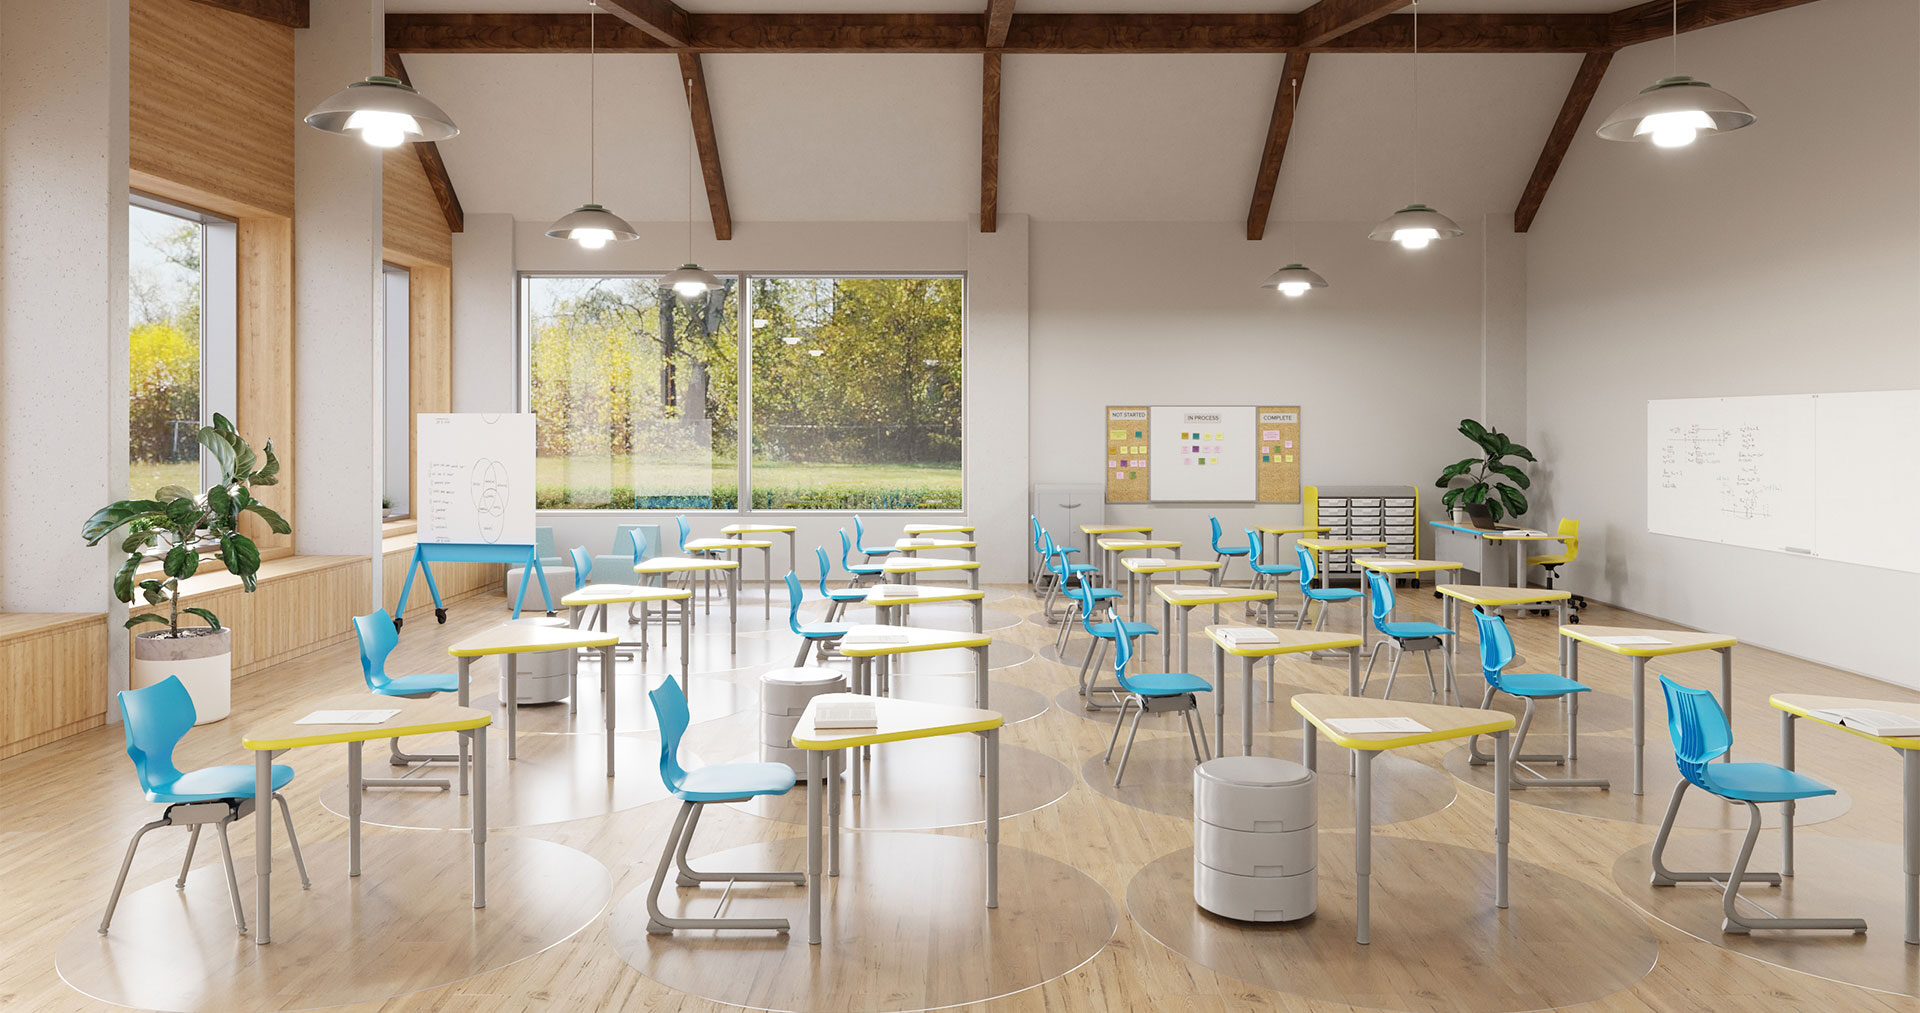 161788-NBS-Smith-Systems---MK-Campaing_School-Safely---Classroom04